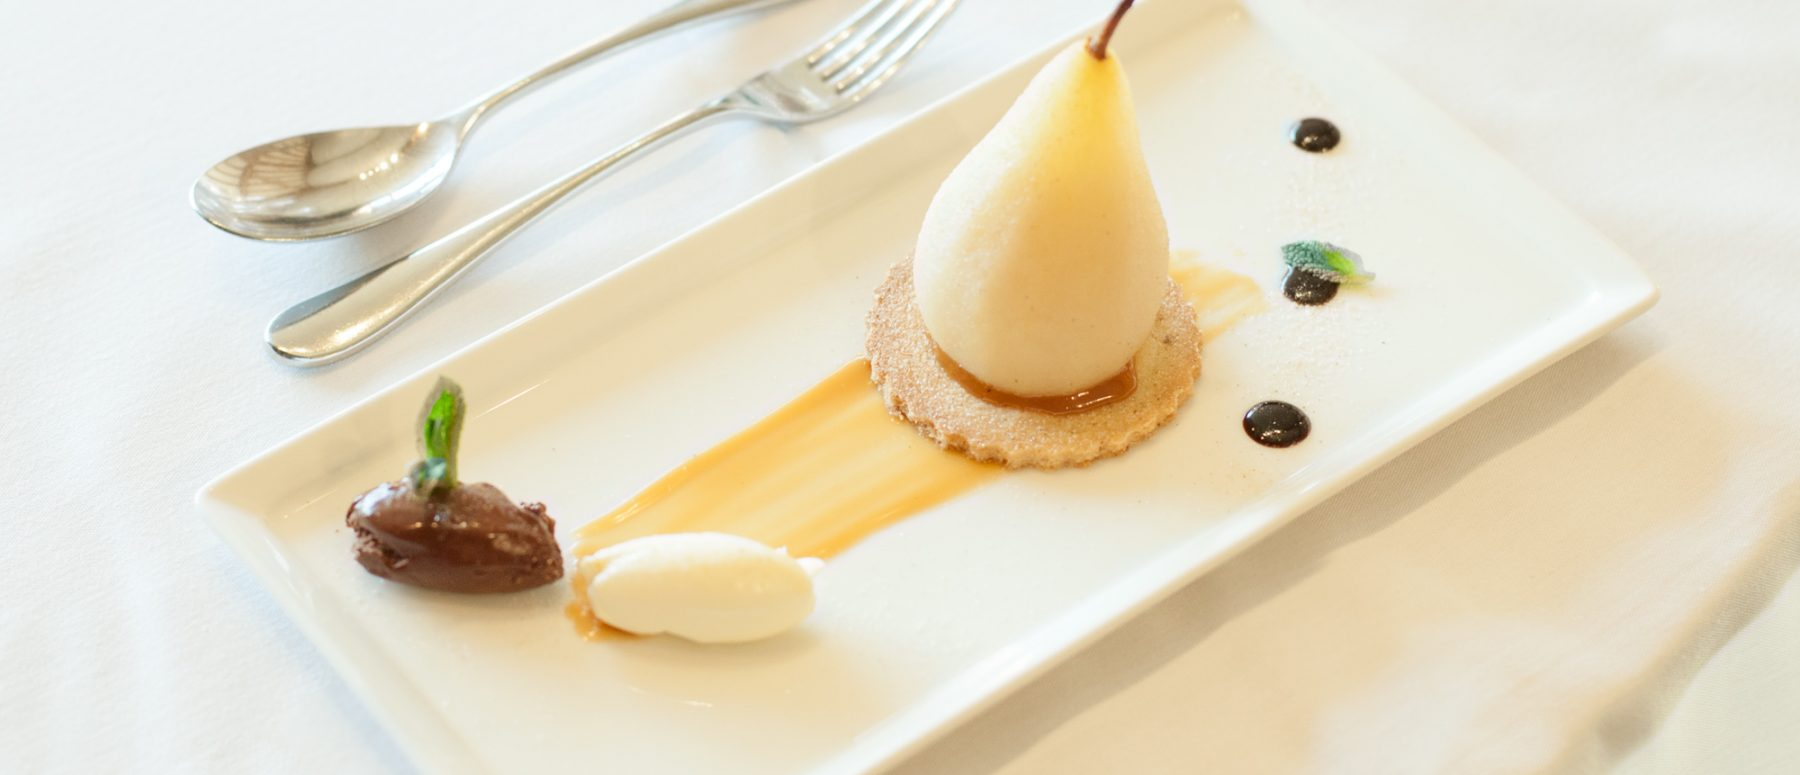 Poached Pear with Salted Caramel on a Spiced Sable Biscuit ...